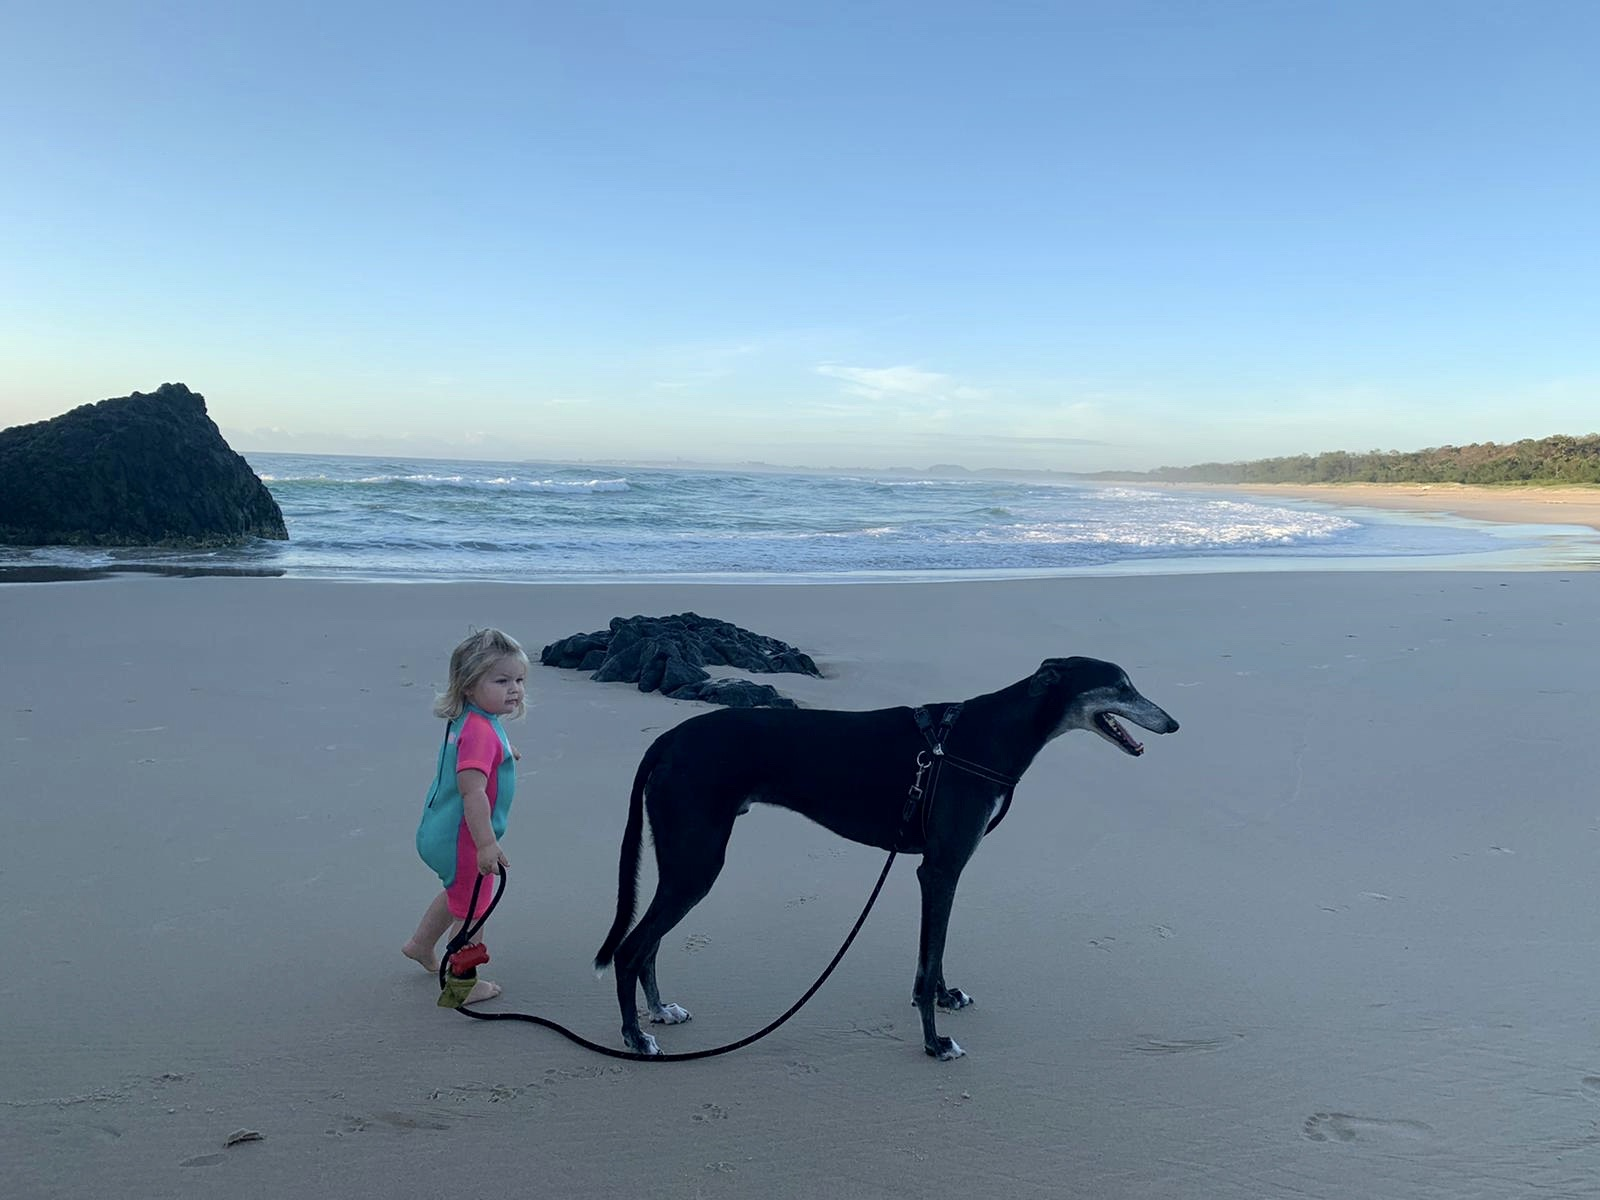 Small child standing behind a greyhound on a beach